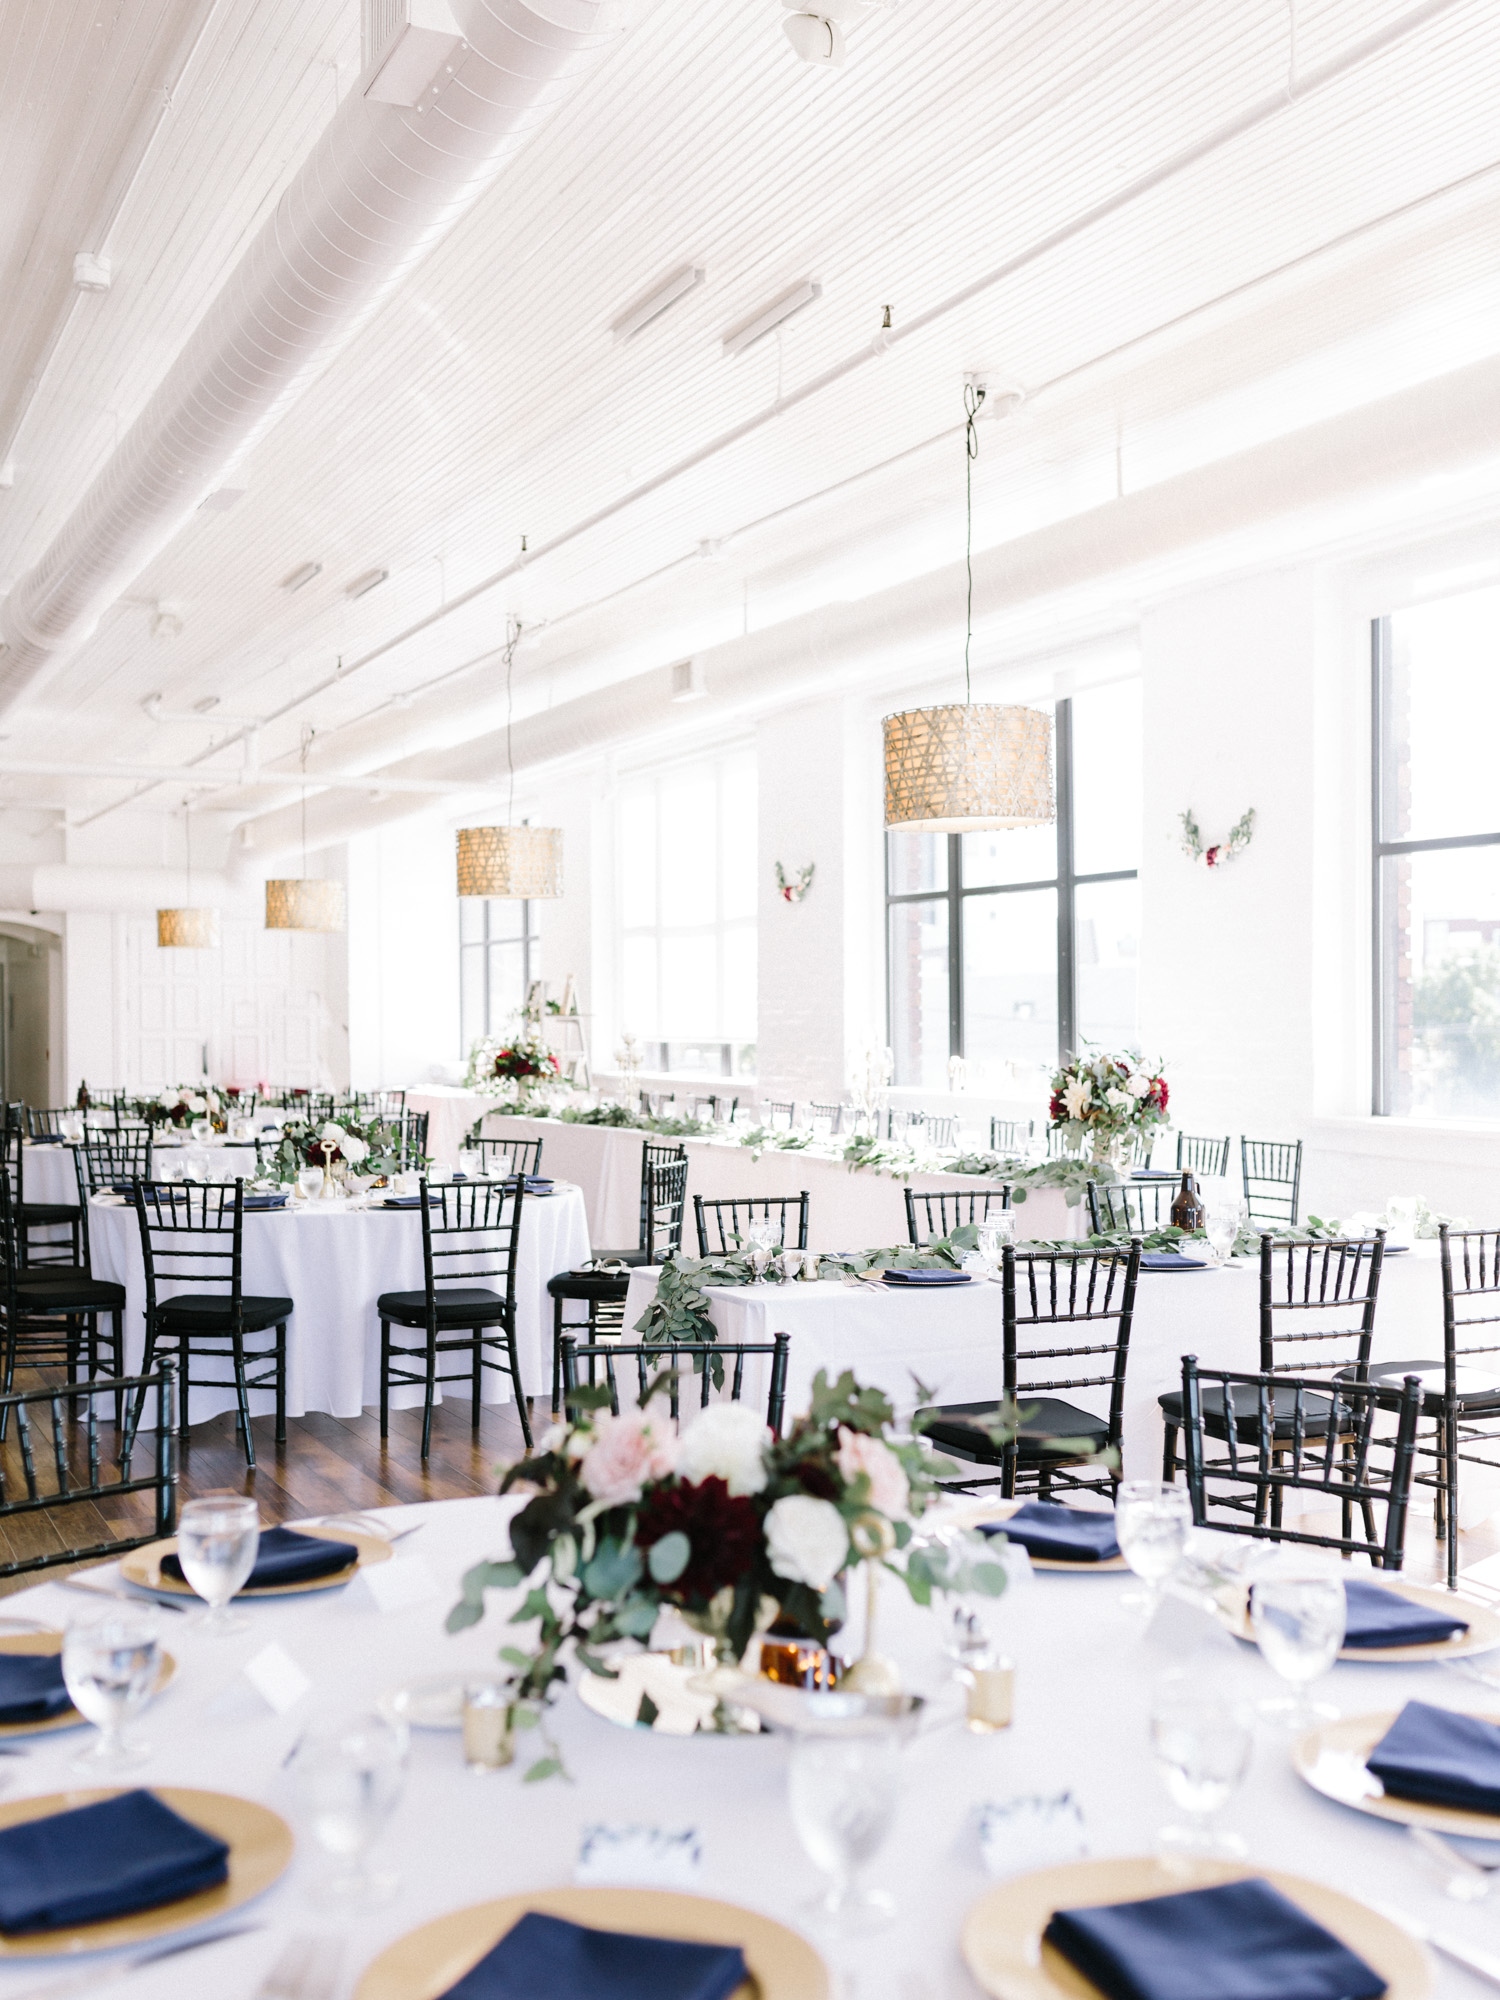 Reception tables, centerpieces, and decor at Loft 310 in Kalamazoo, Michigan